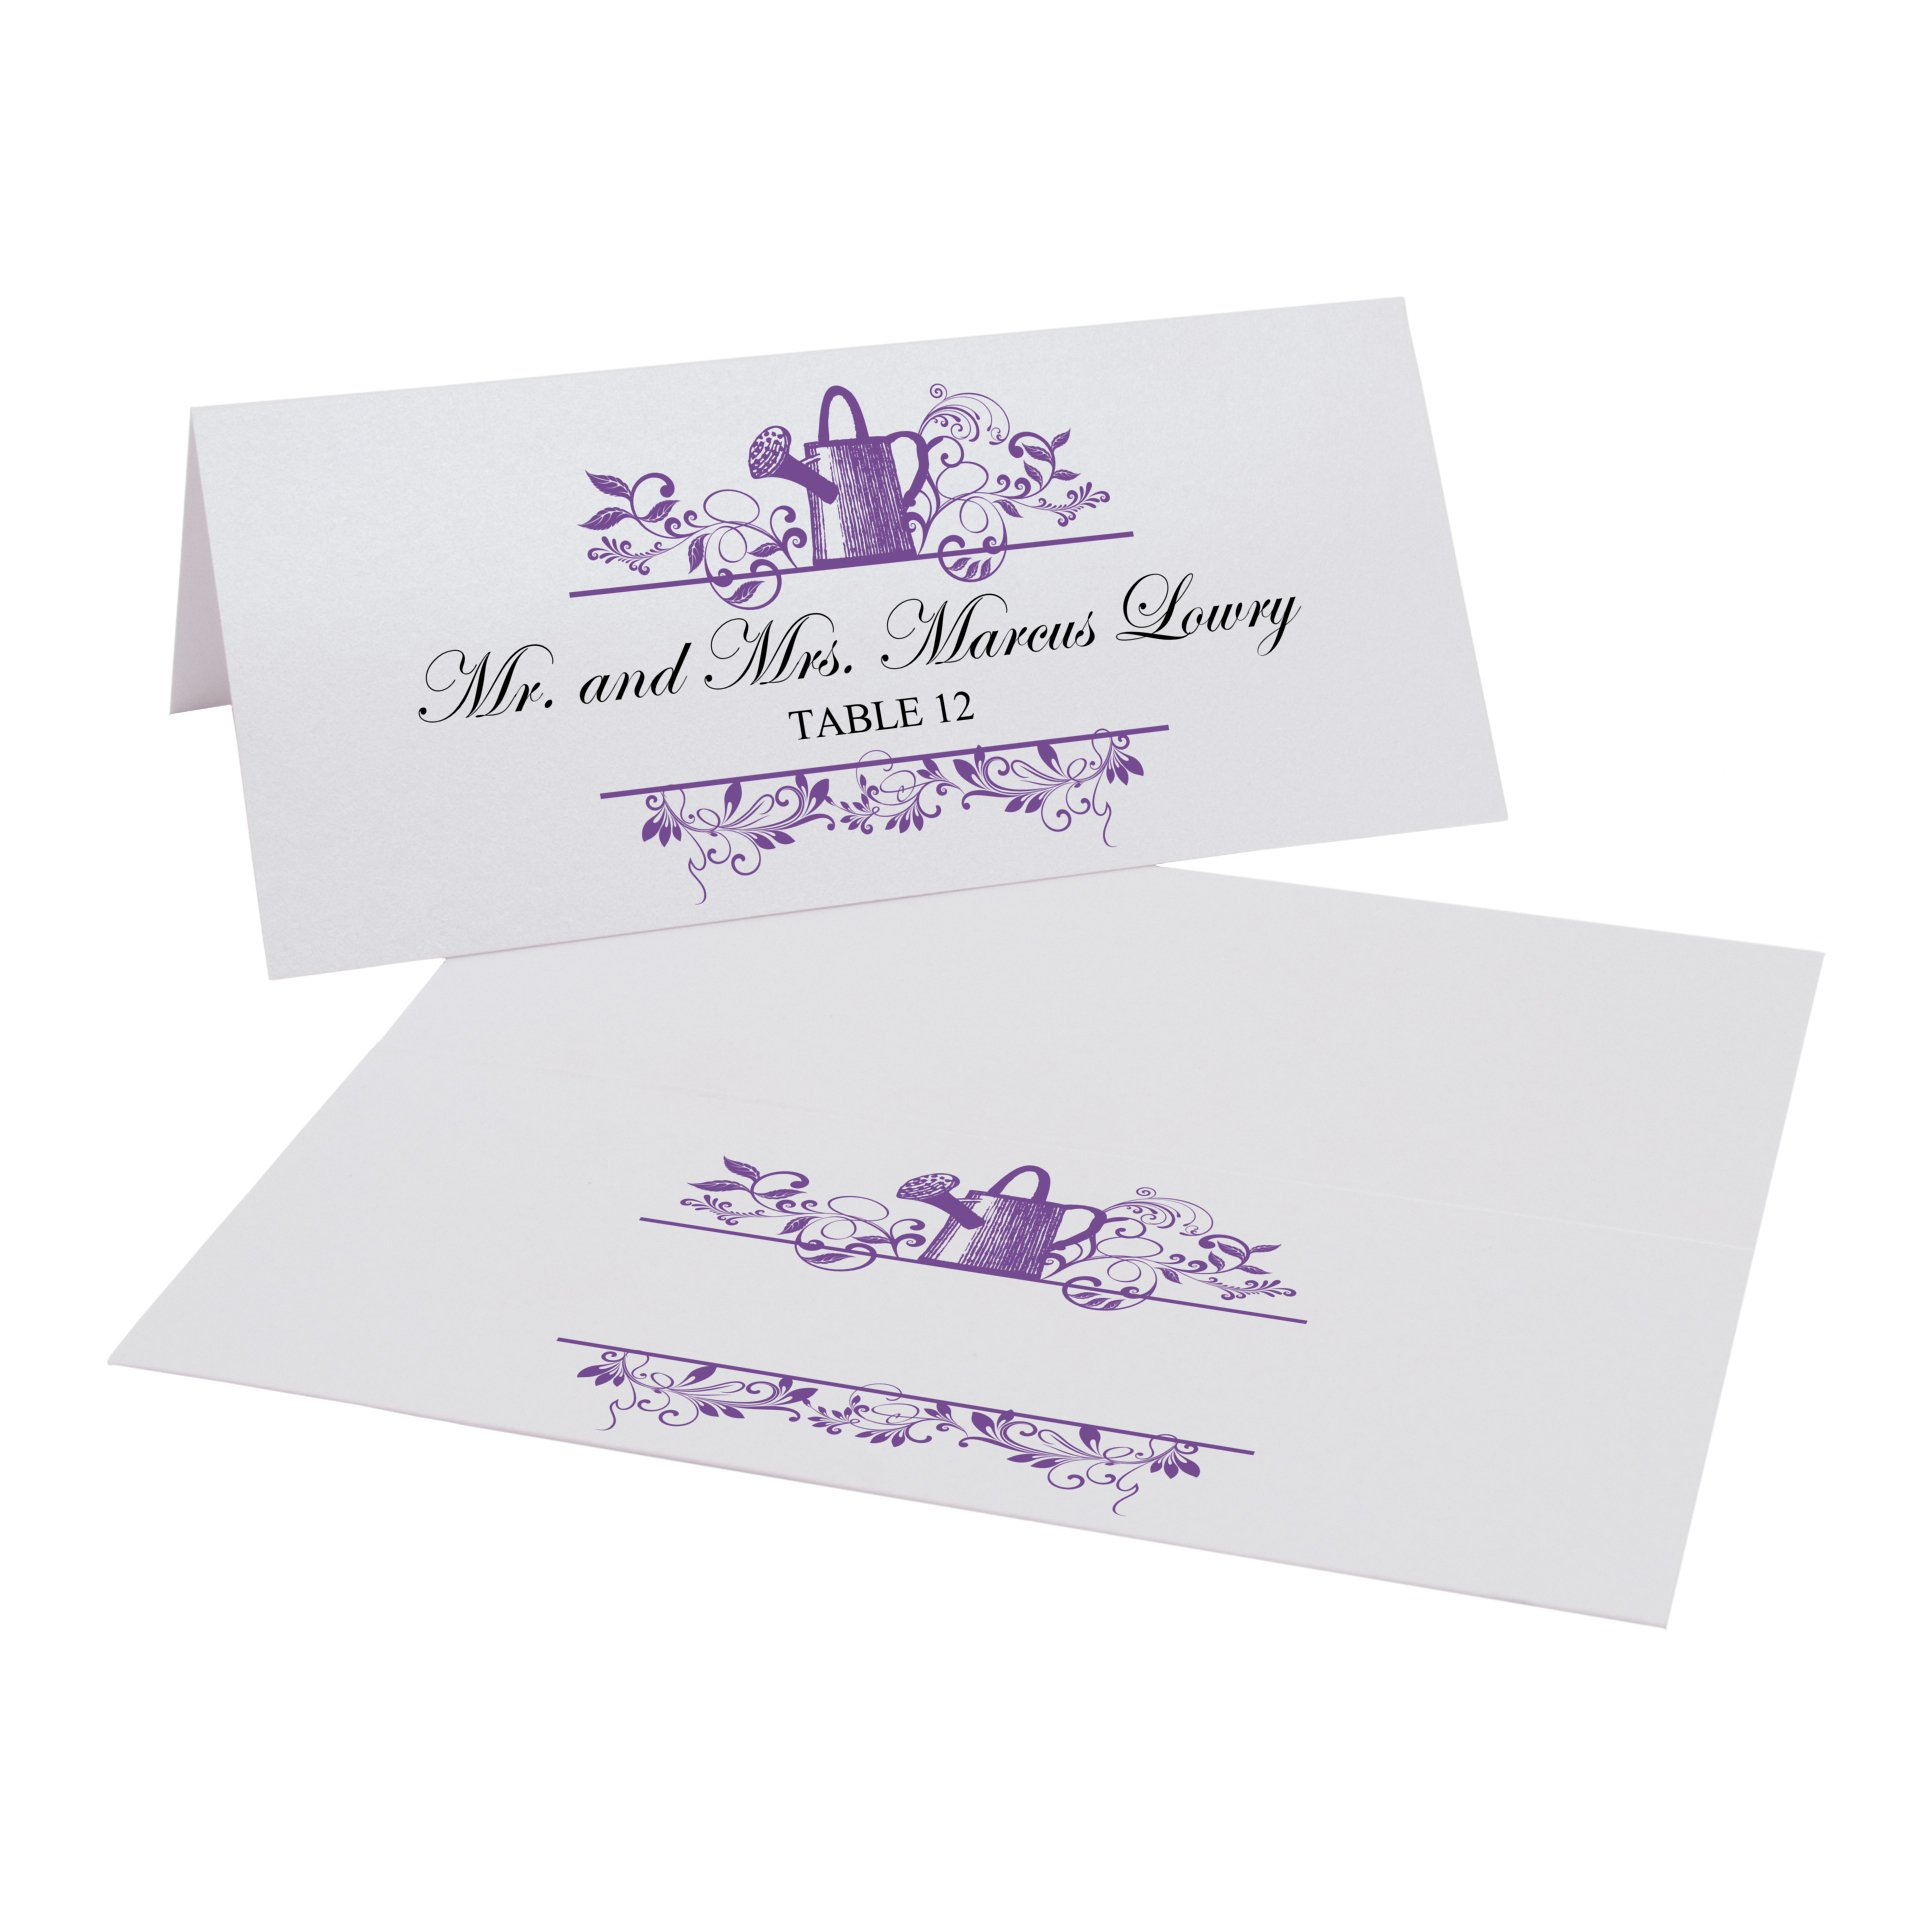 Vintage Garden Watering Can Easy Print Place Cards, Pearl White, Purple, Set of 475 (119 Sheets) by Documents and Designs